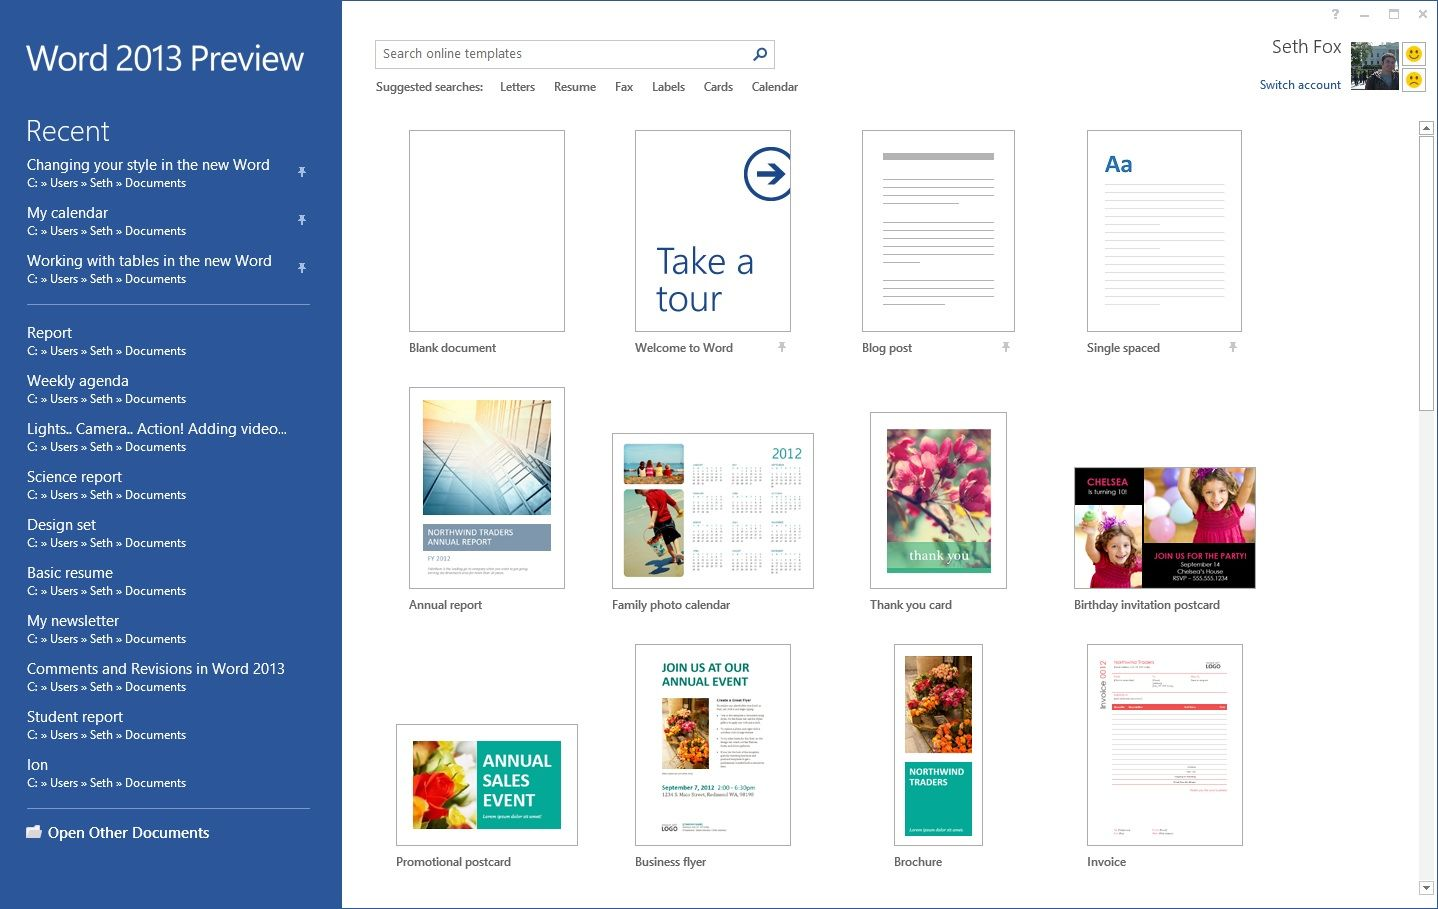 Starting Off Right Templates And Built In Content In The